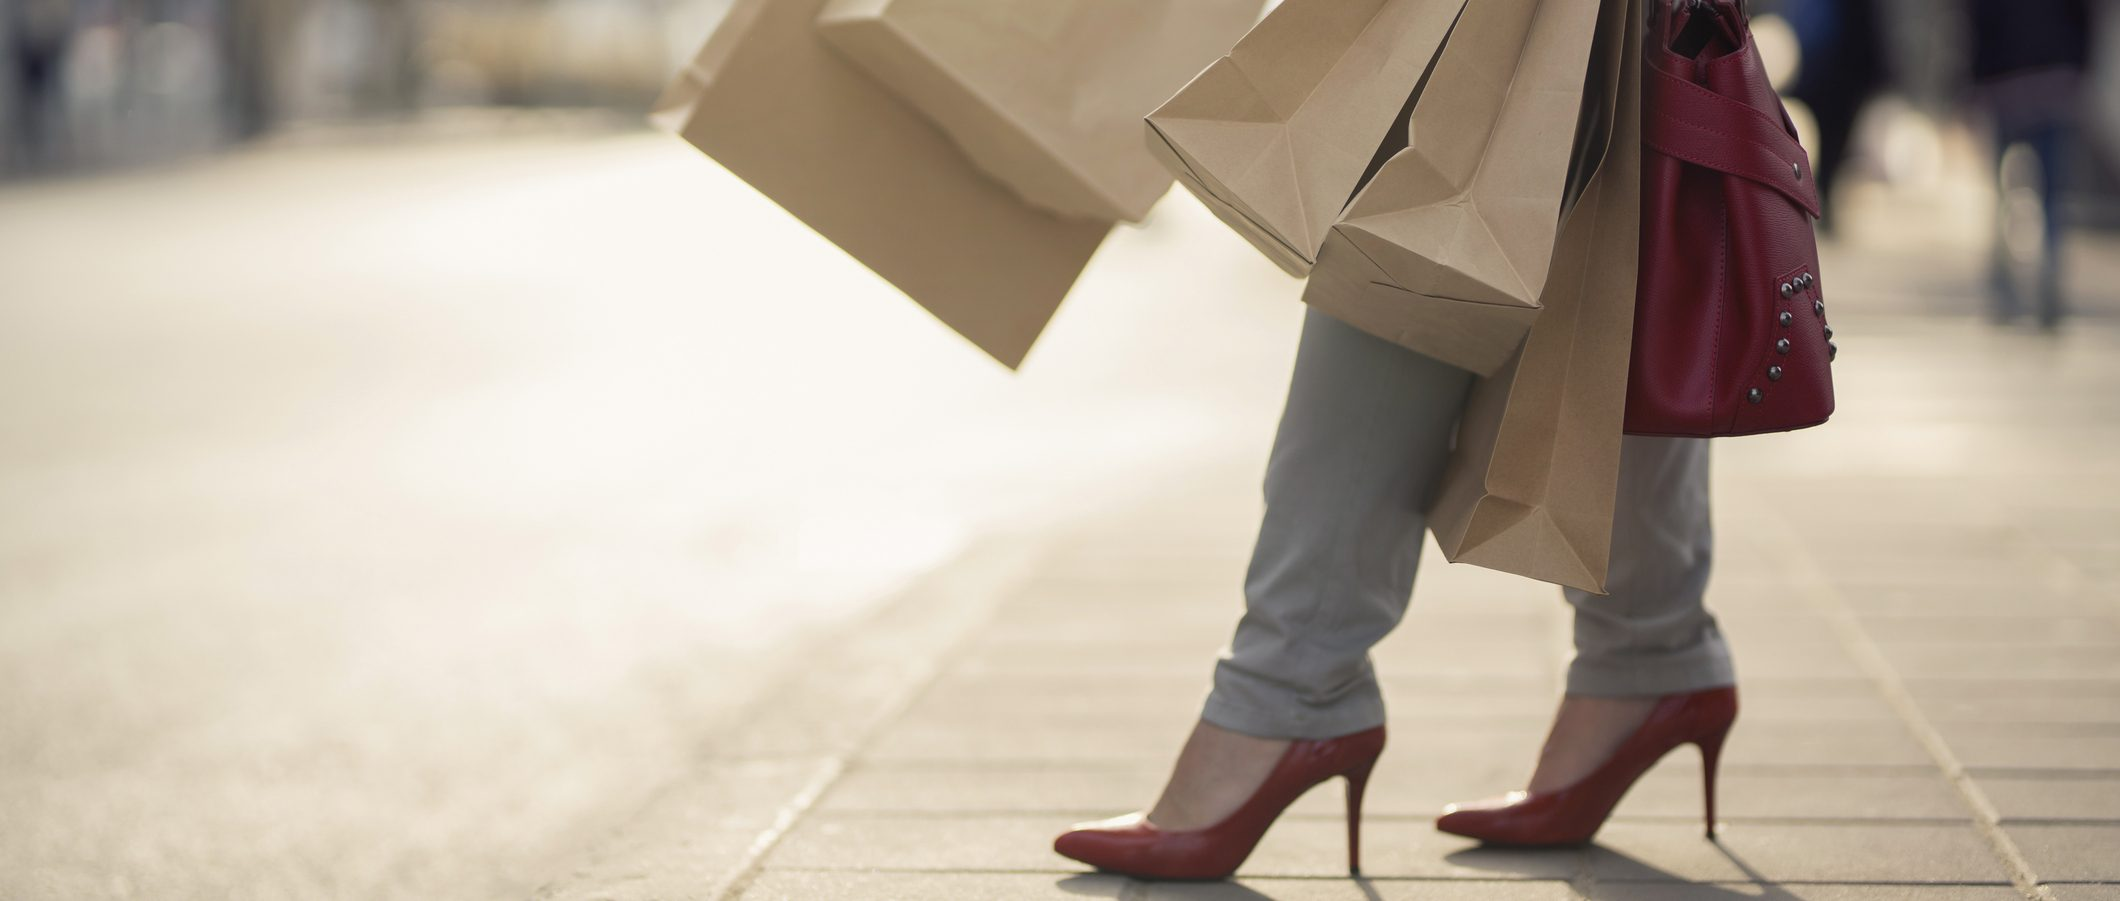 Woman carrying shopping bags